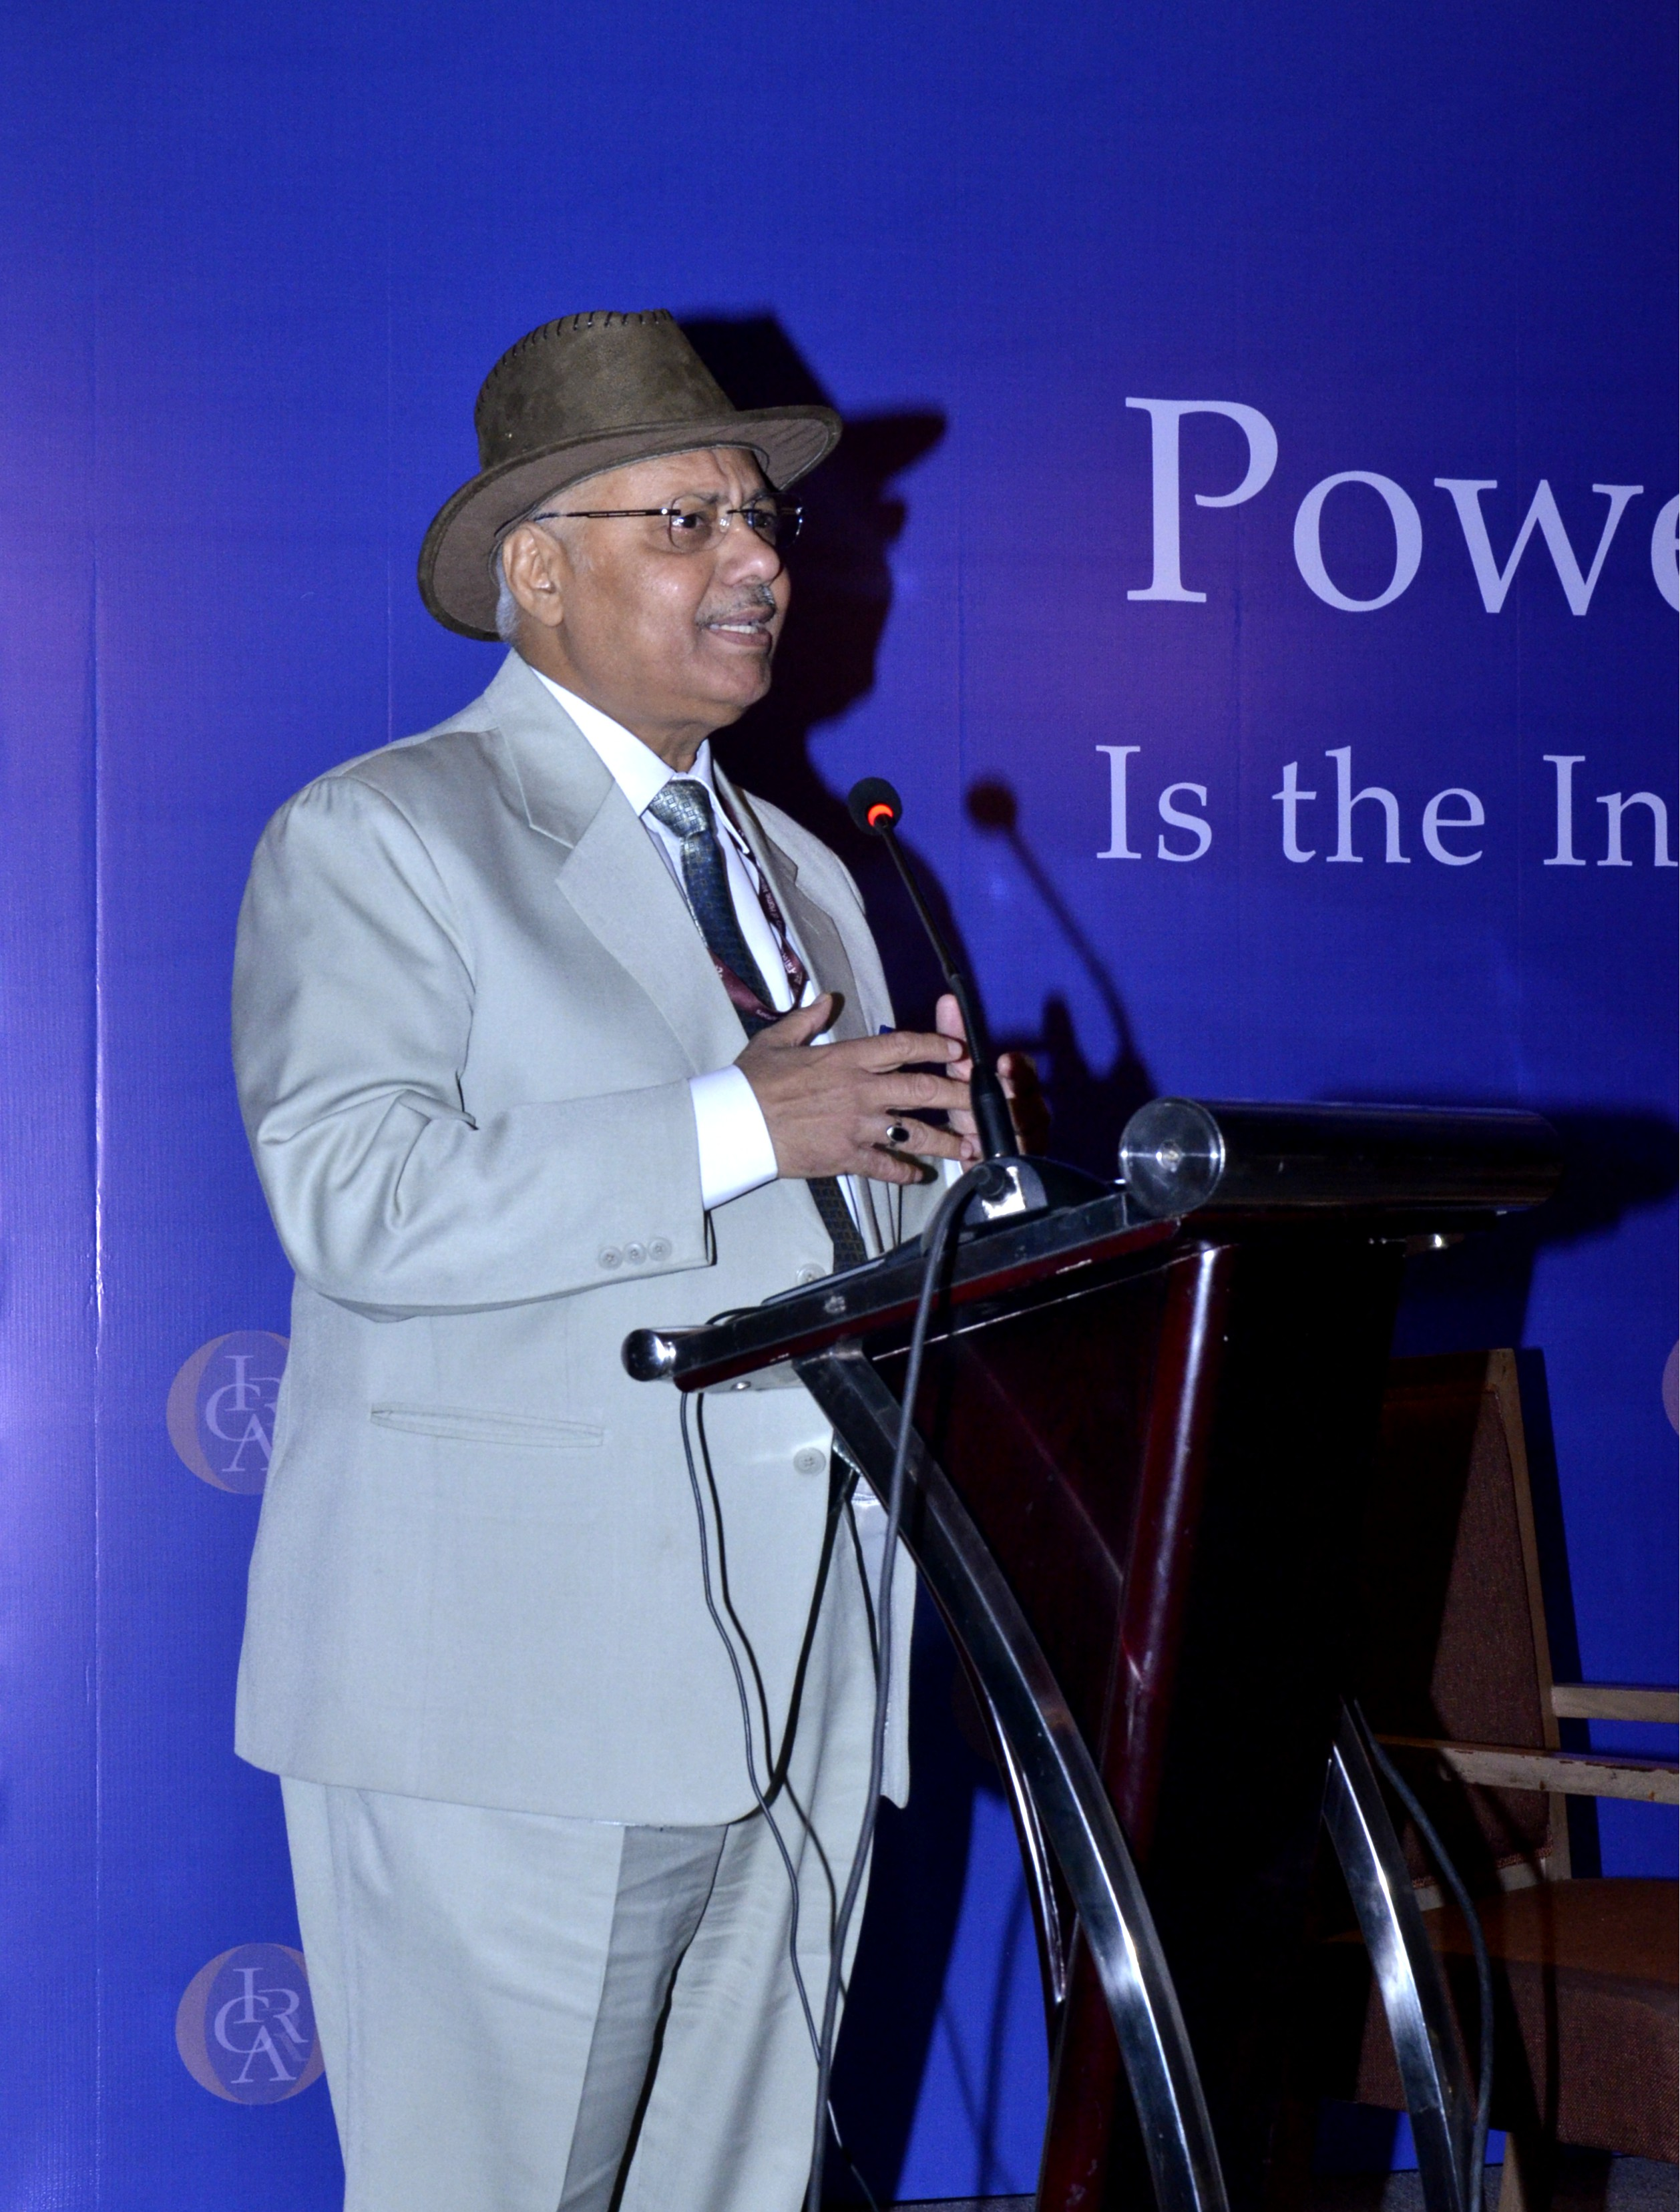 Dr. A. K. Verma, Joint Secretary, Ministry of Power delivering keynote speech at the Conference